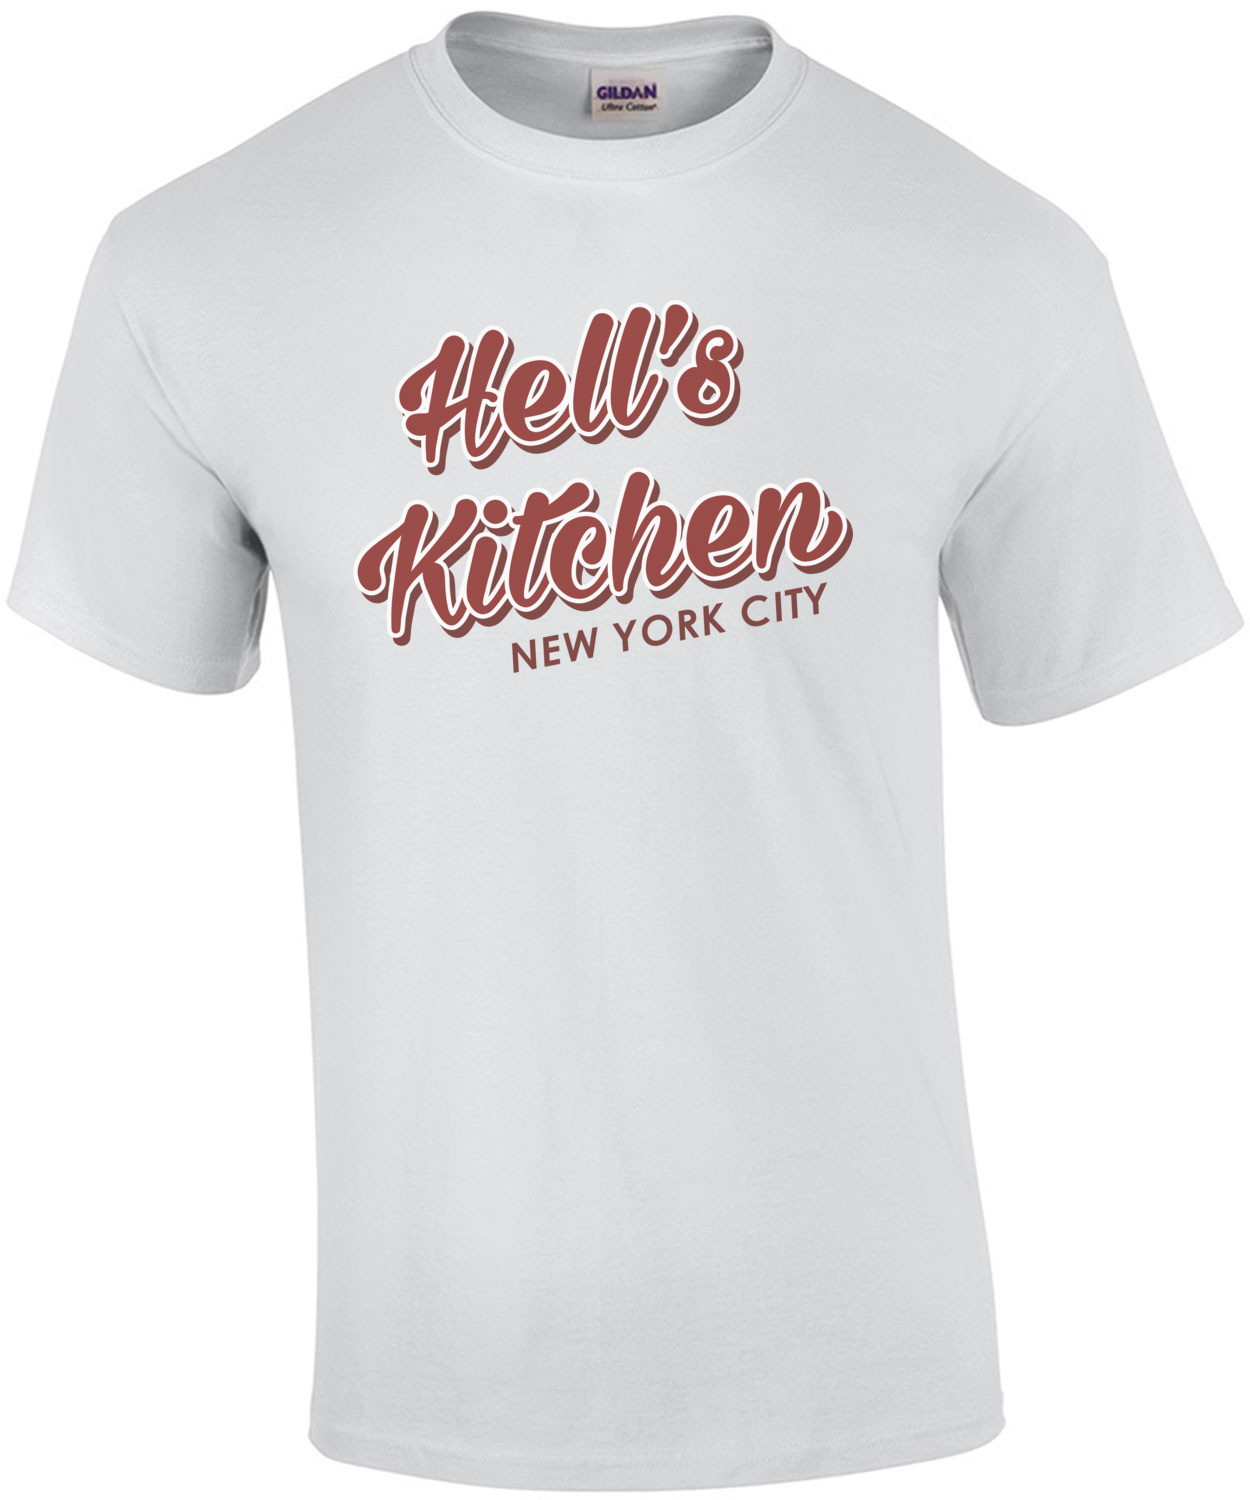 Hell's Kitchen - New York City T-Shirt